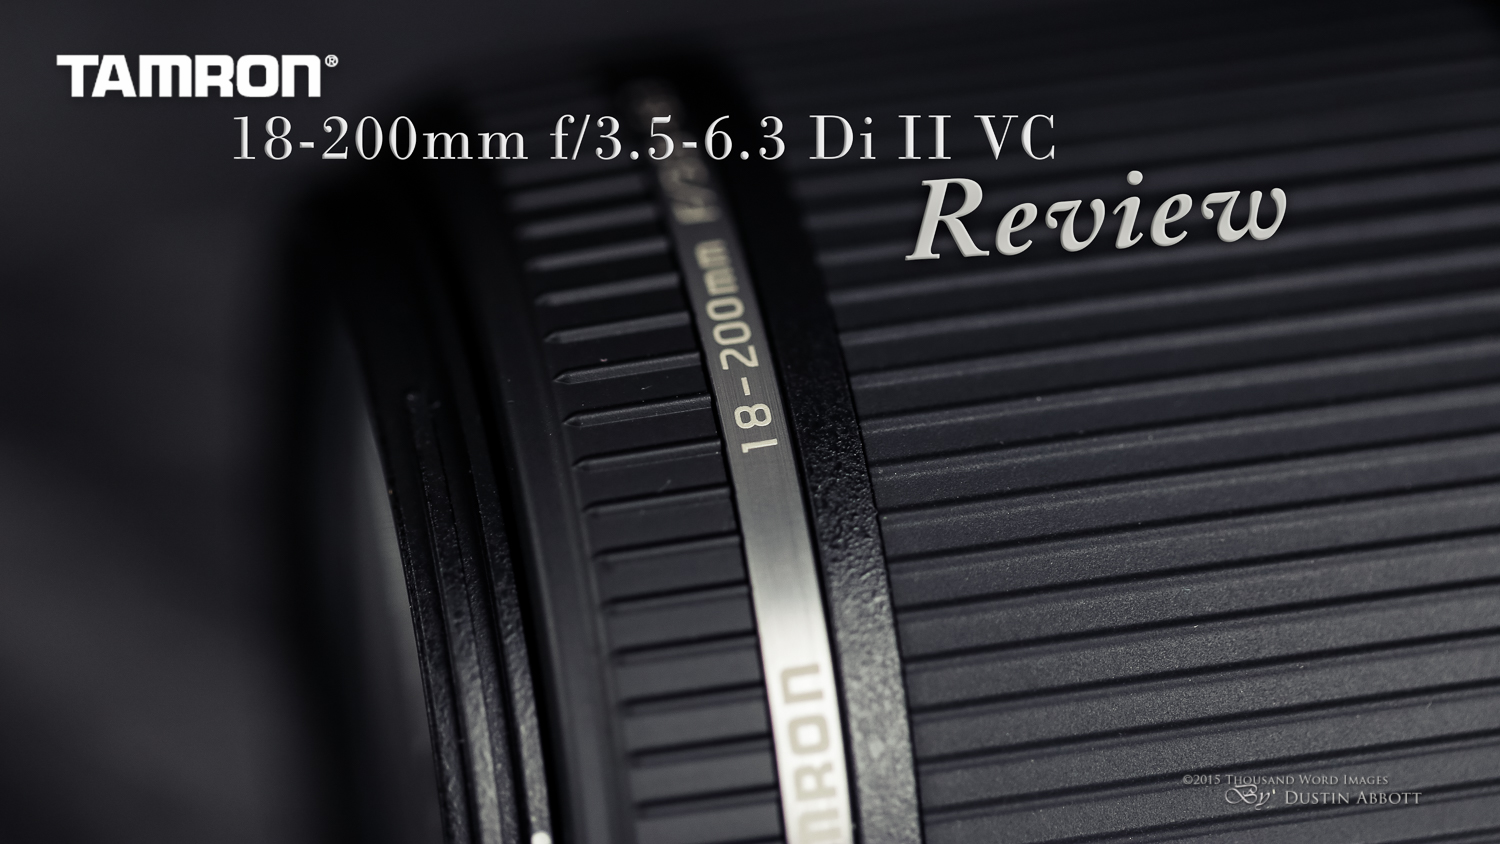 Tamron 18-200mm f/3.5-6.3 Di II VC Review